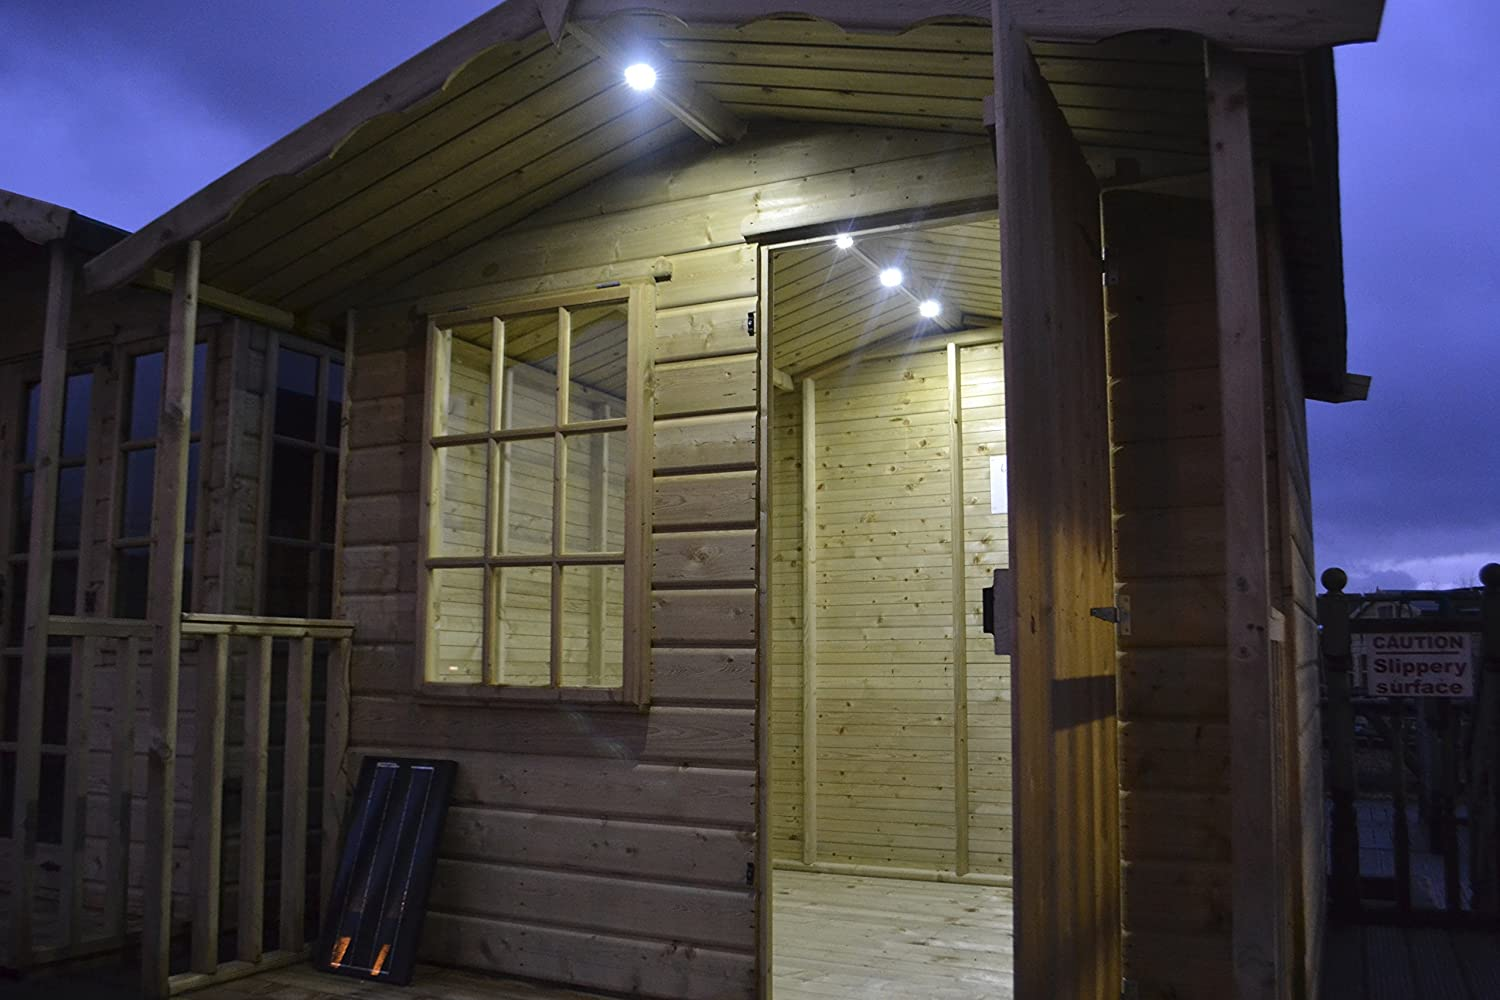 summer house lighting. Britalitez Solar Lighting Kit, Small, Suited For Sheds, Summer Houses, Small Outbuildings, Stables, Garage, Container, Off The Grid Power: Amazon.co.uk: House C